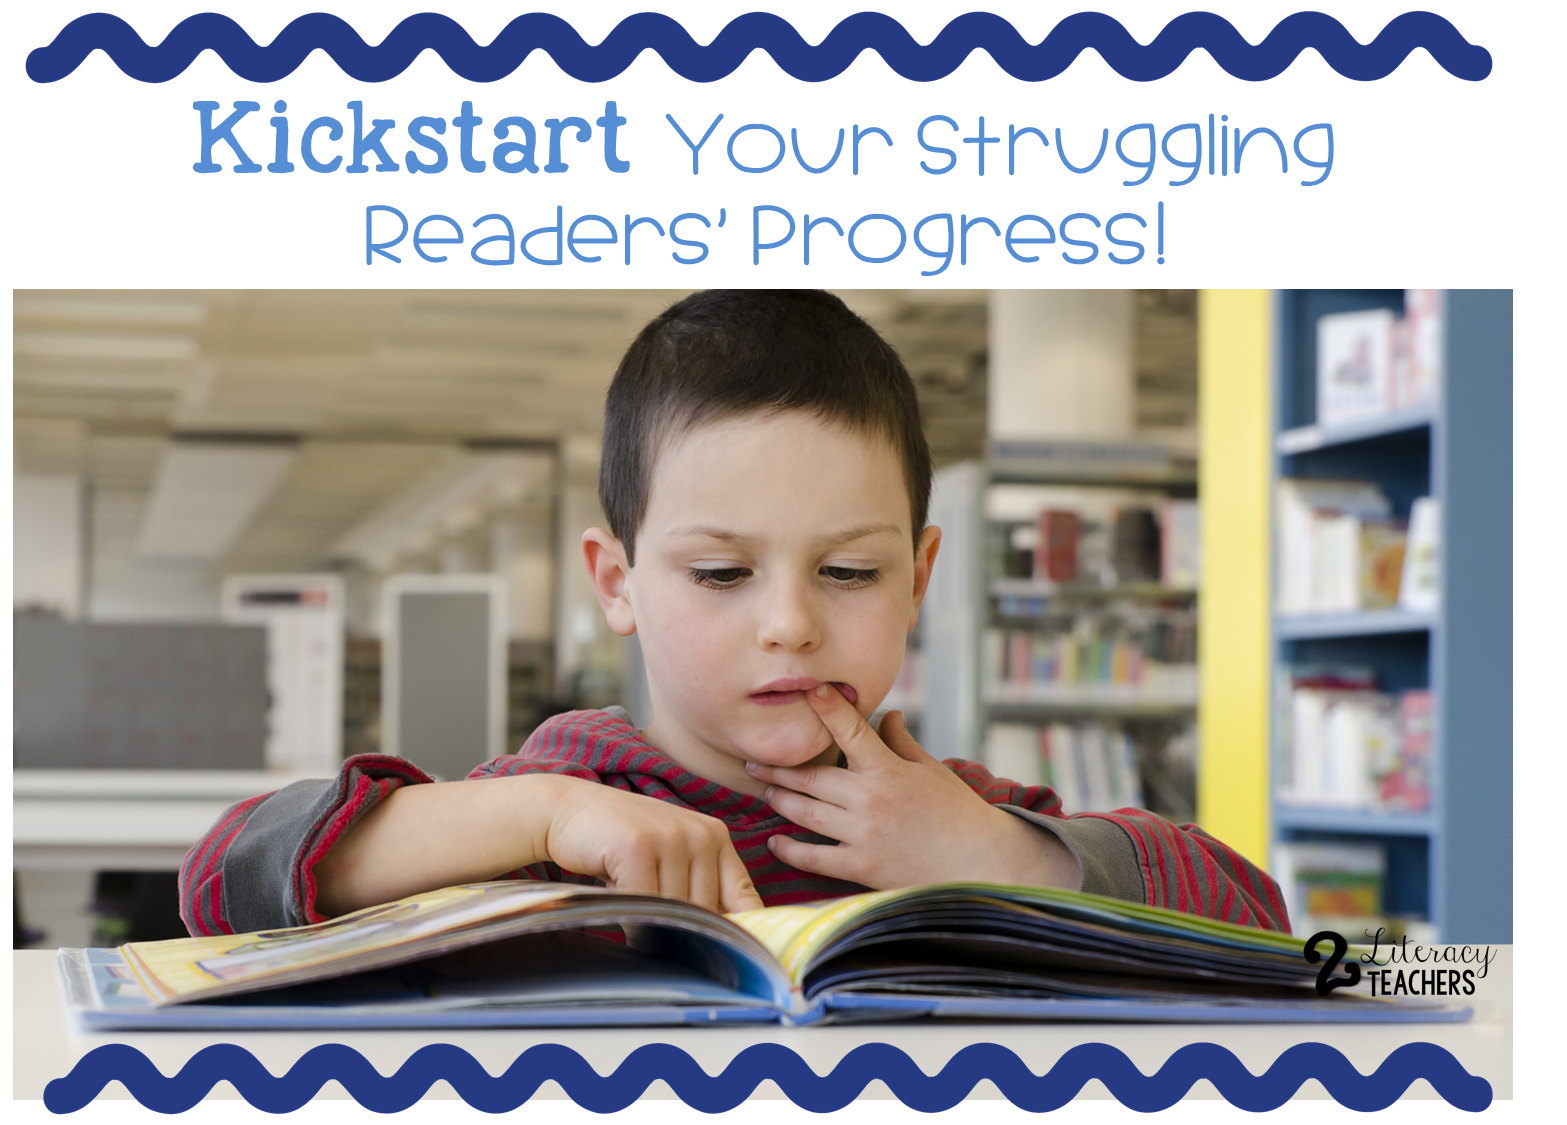 Kickstart Your Struggling Readers' Progress!